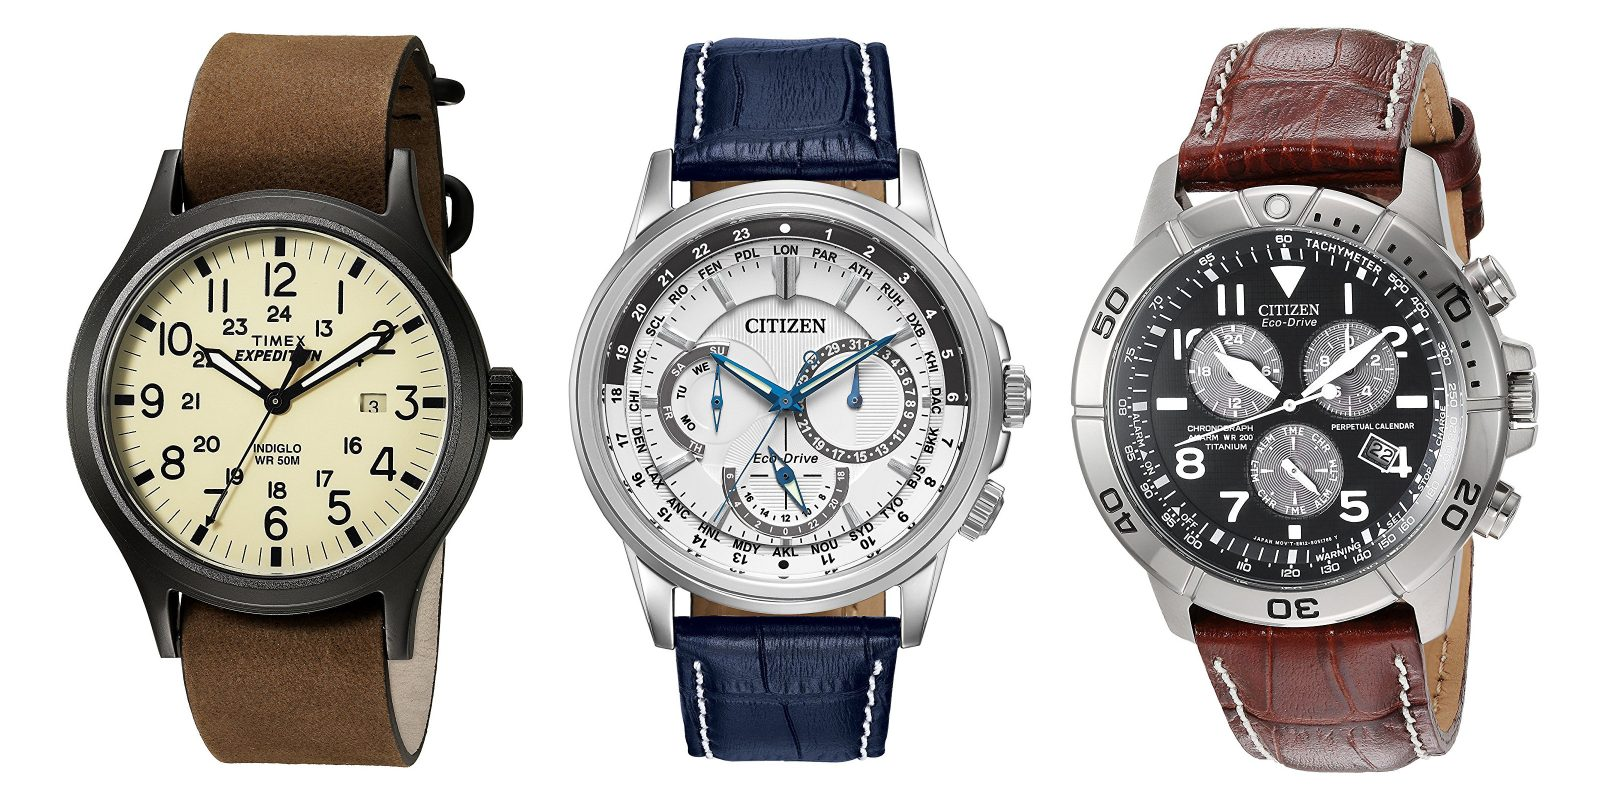 Men's watches now 50% off at Amazon: Citizen, Timex, GUESS and more from $15